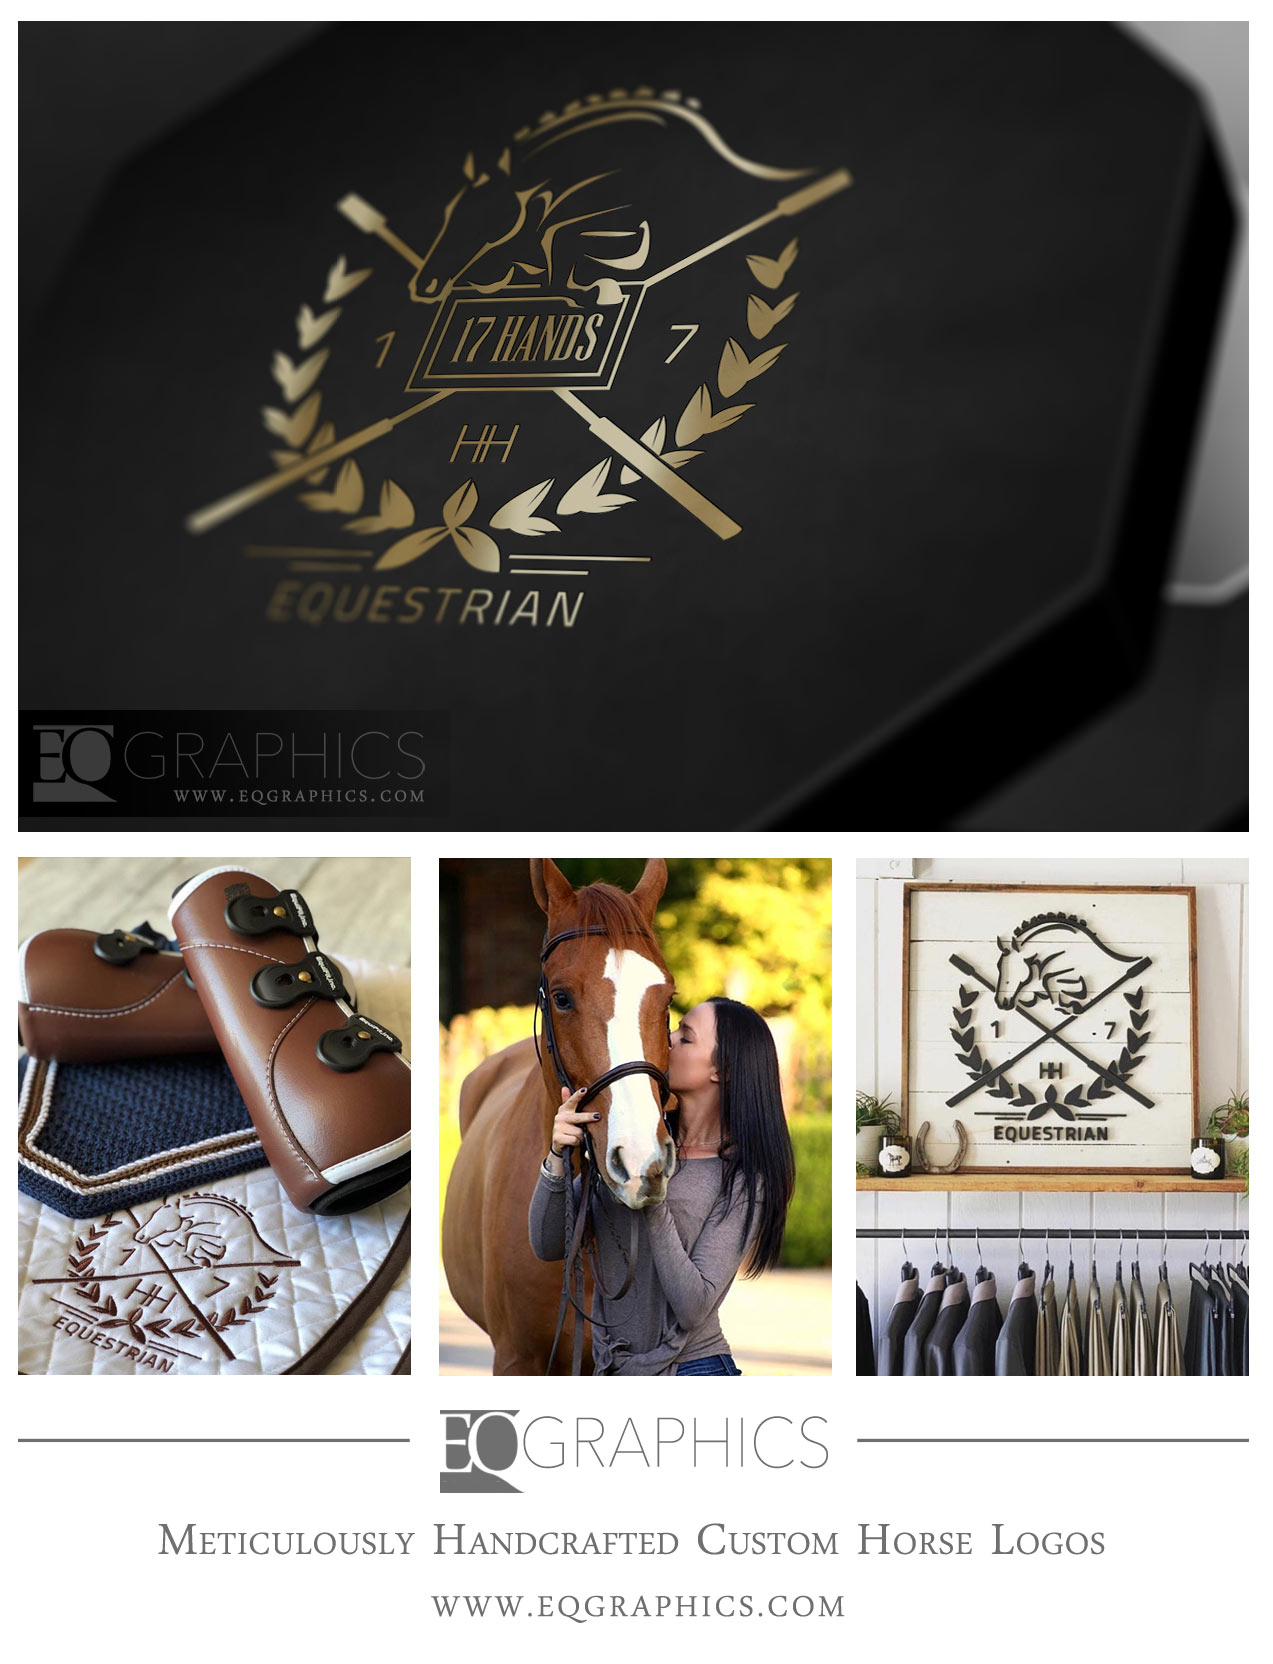 17H Equestrian Custom Hand-Drawn Horse Logo Design by EQ Graphics Equine Logos